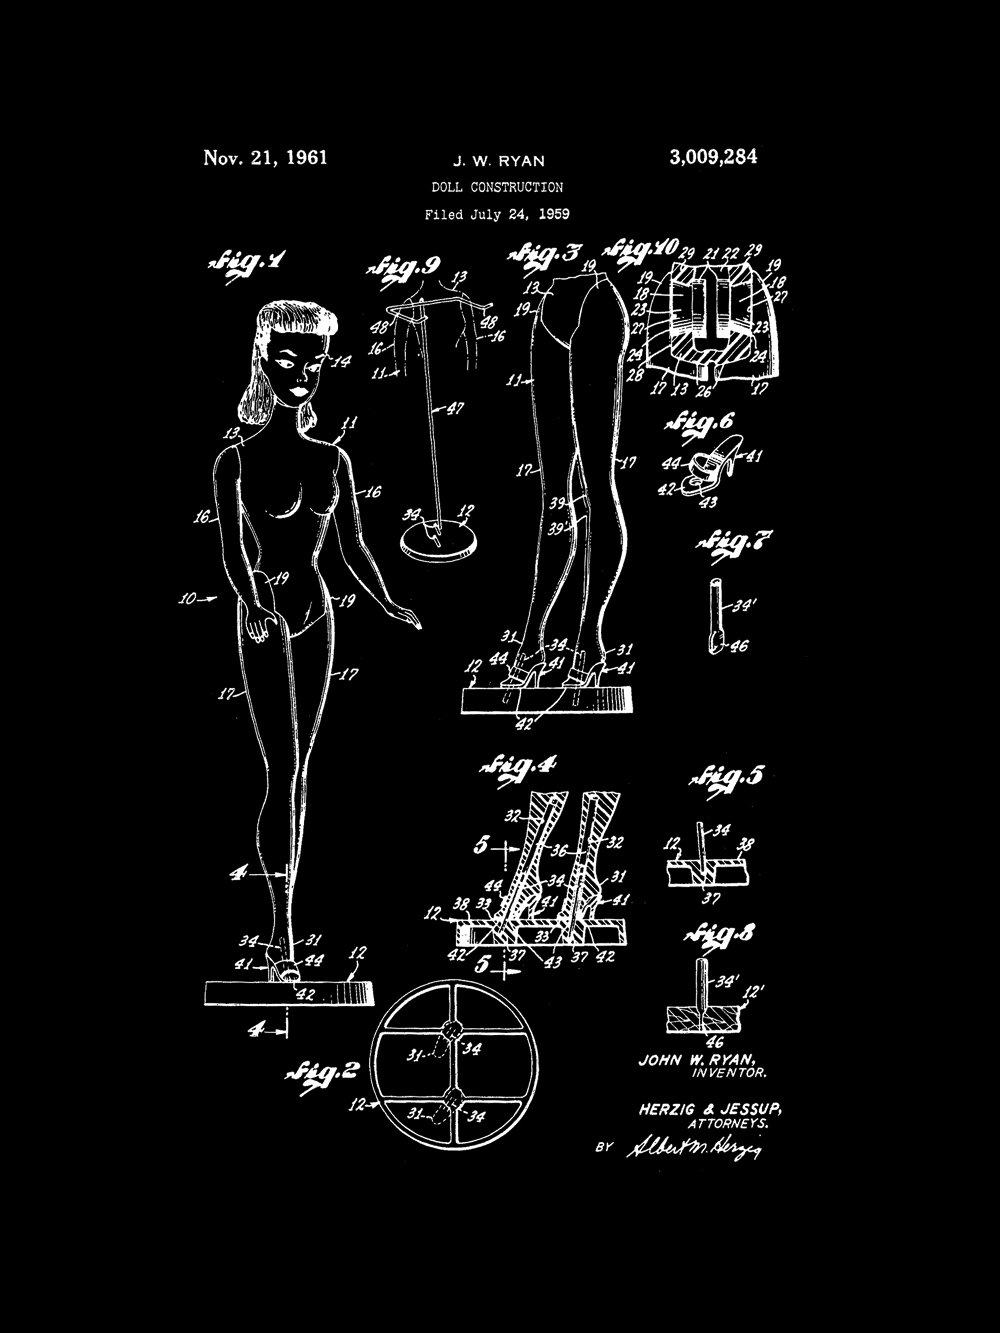 Black Framable Patent Art PAPXSSP57VB The Original Ready to Frame D/écor Barbie Doll Classic Retro Girls 8in by 10in Patent Art Poster Print Vintage